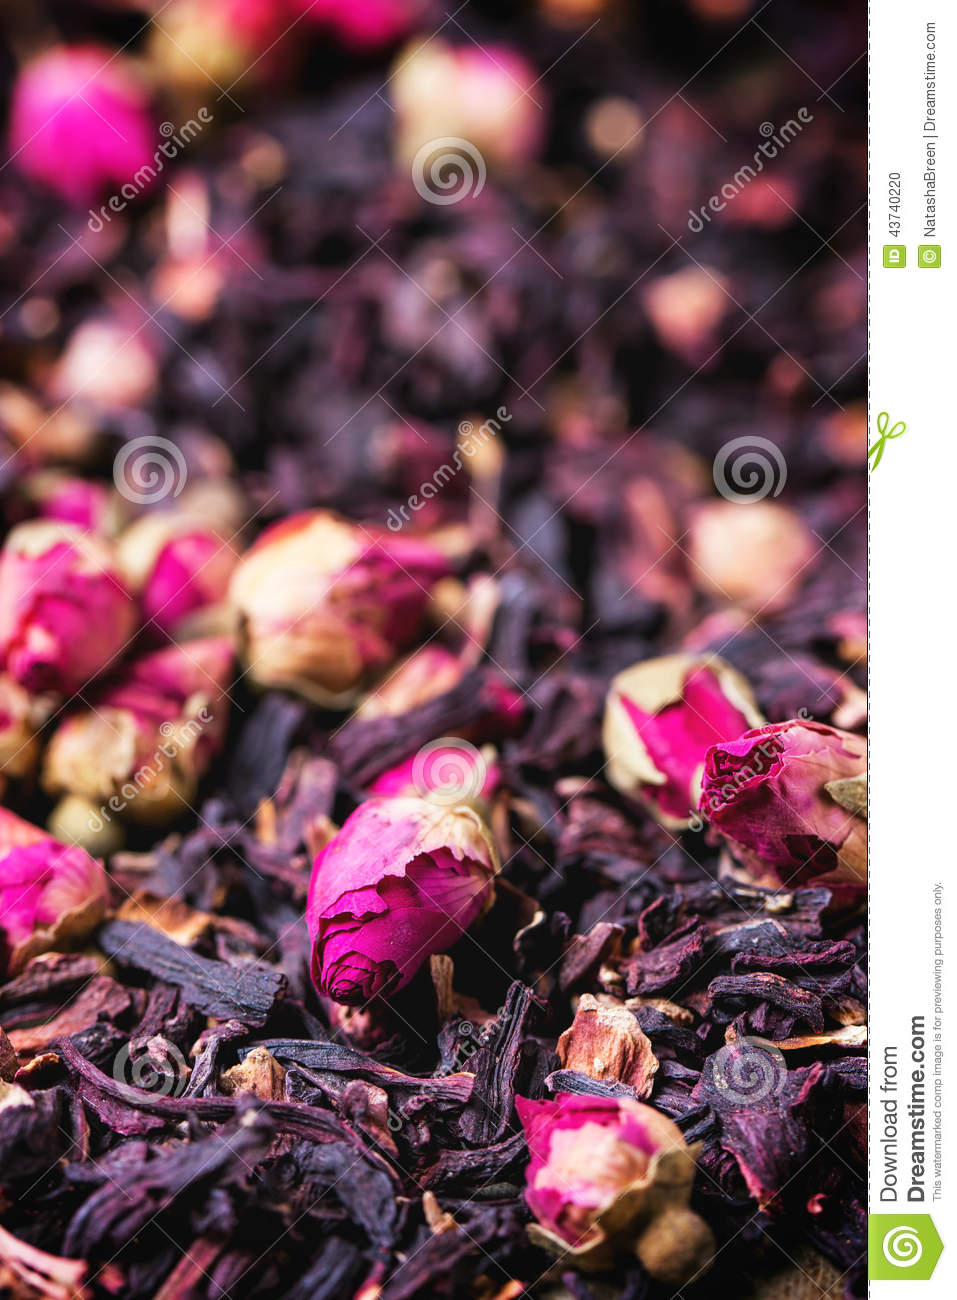 Tea roses and dried hibiscus flower stock photo image of tea roses and dried hibiscus flower izmirmasajfo Images